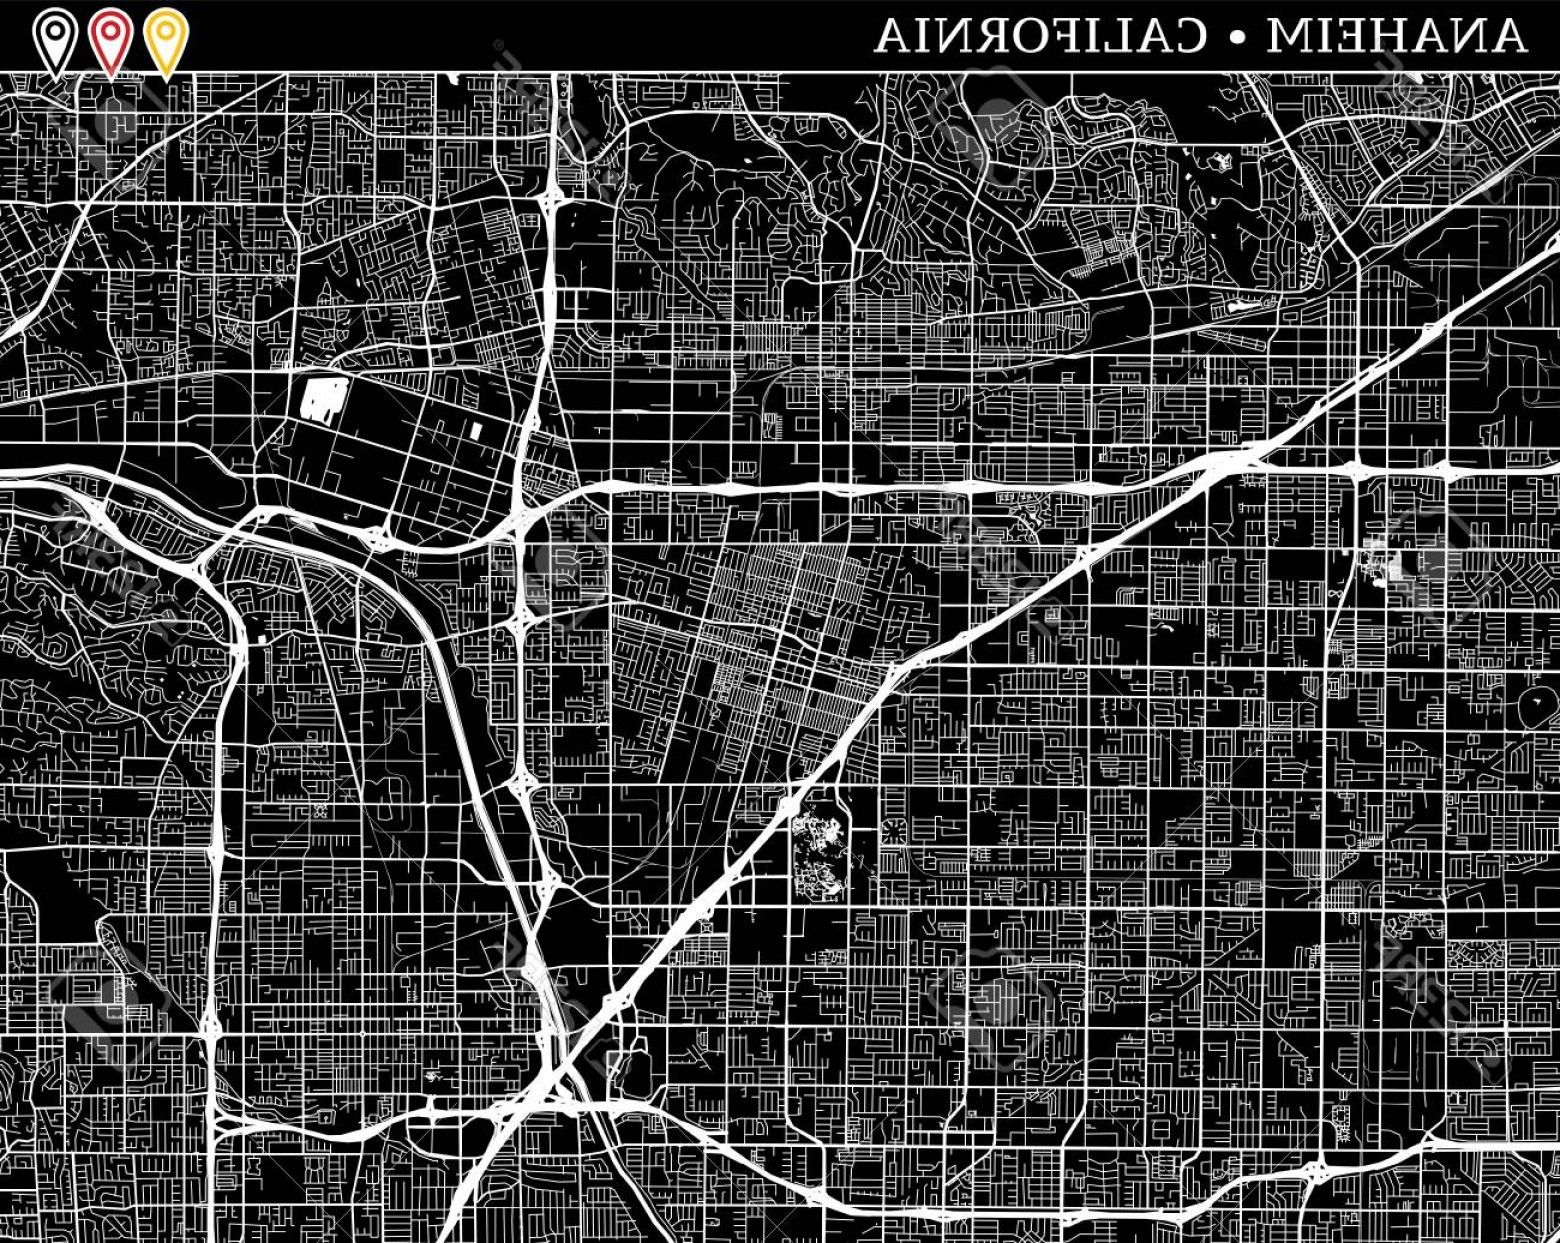 California Black And White Vector: Photostock Vector Simple Map Of Anaheim California Usa Black And White Version For Clean Backgrounds And Prints This M